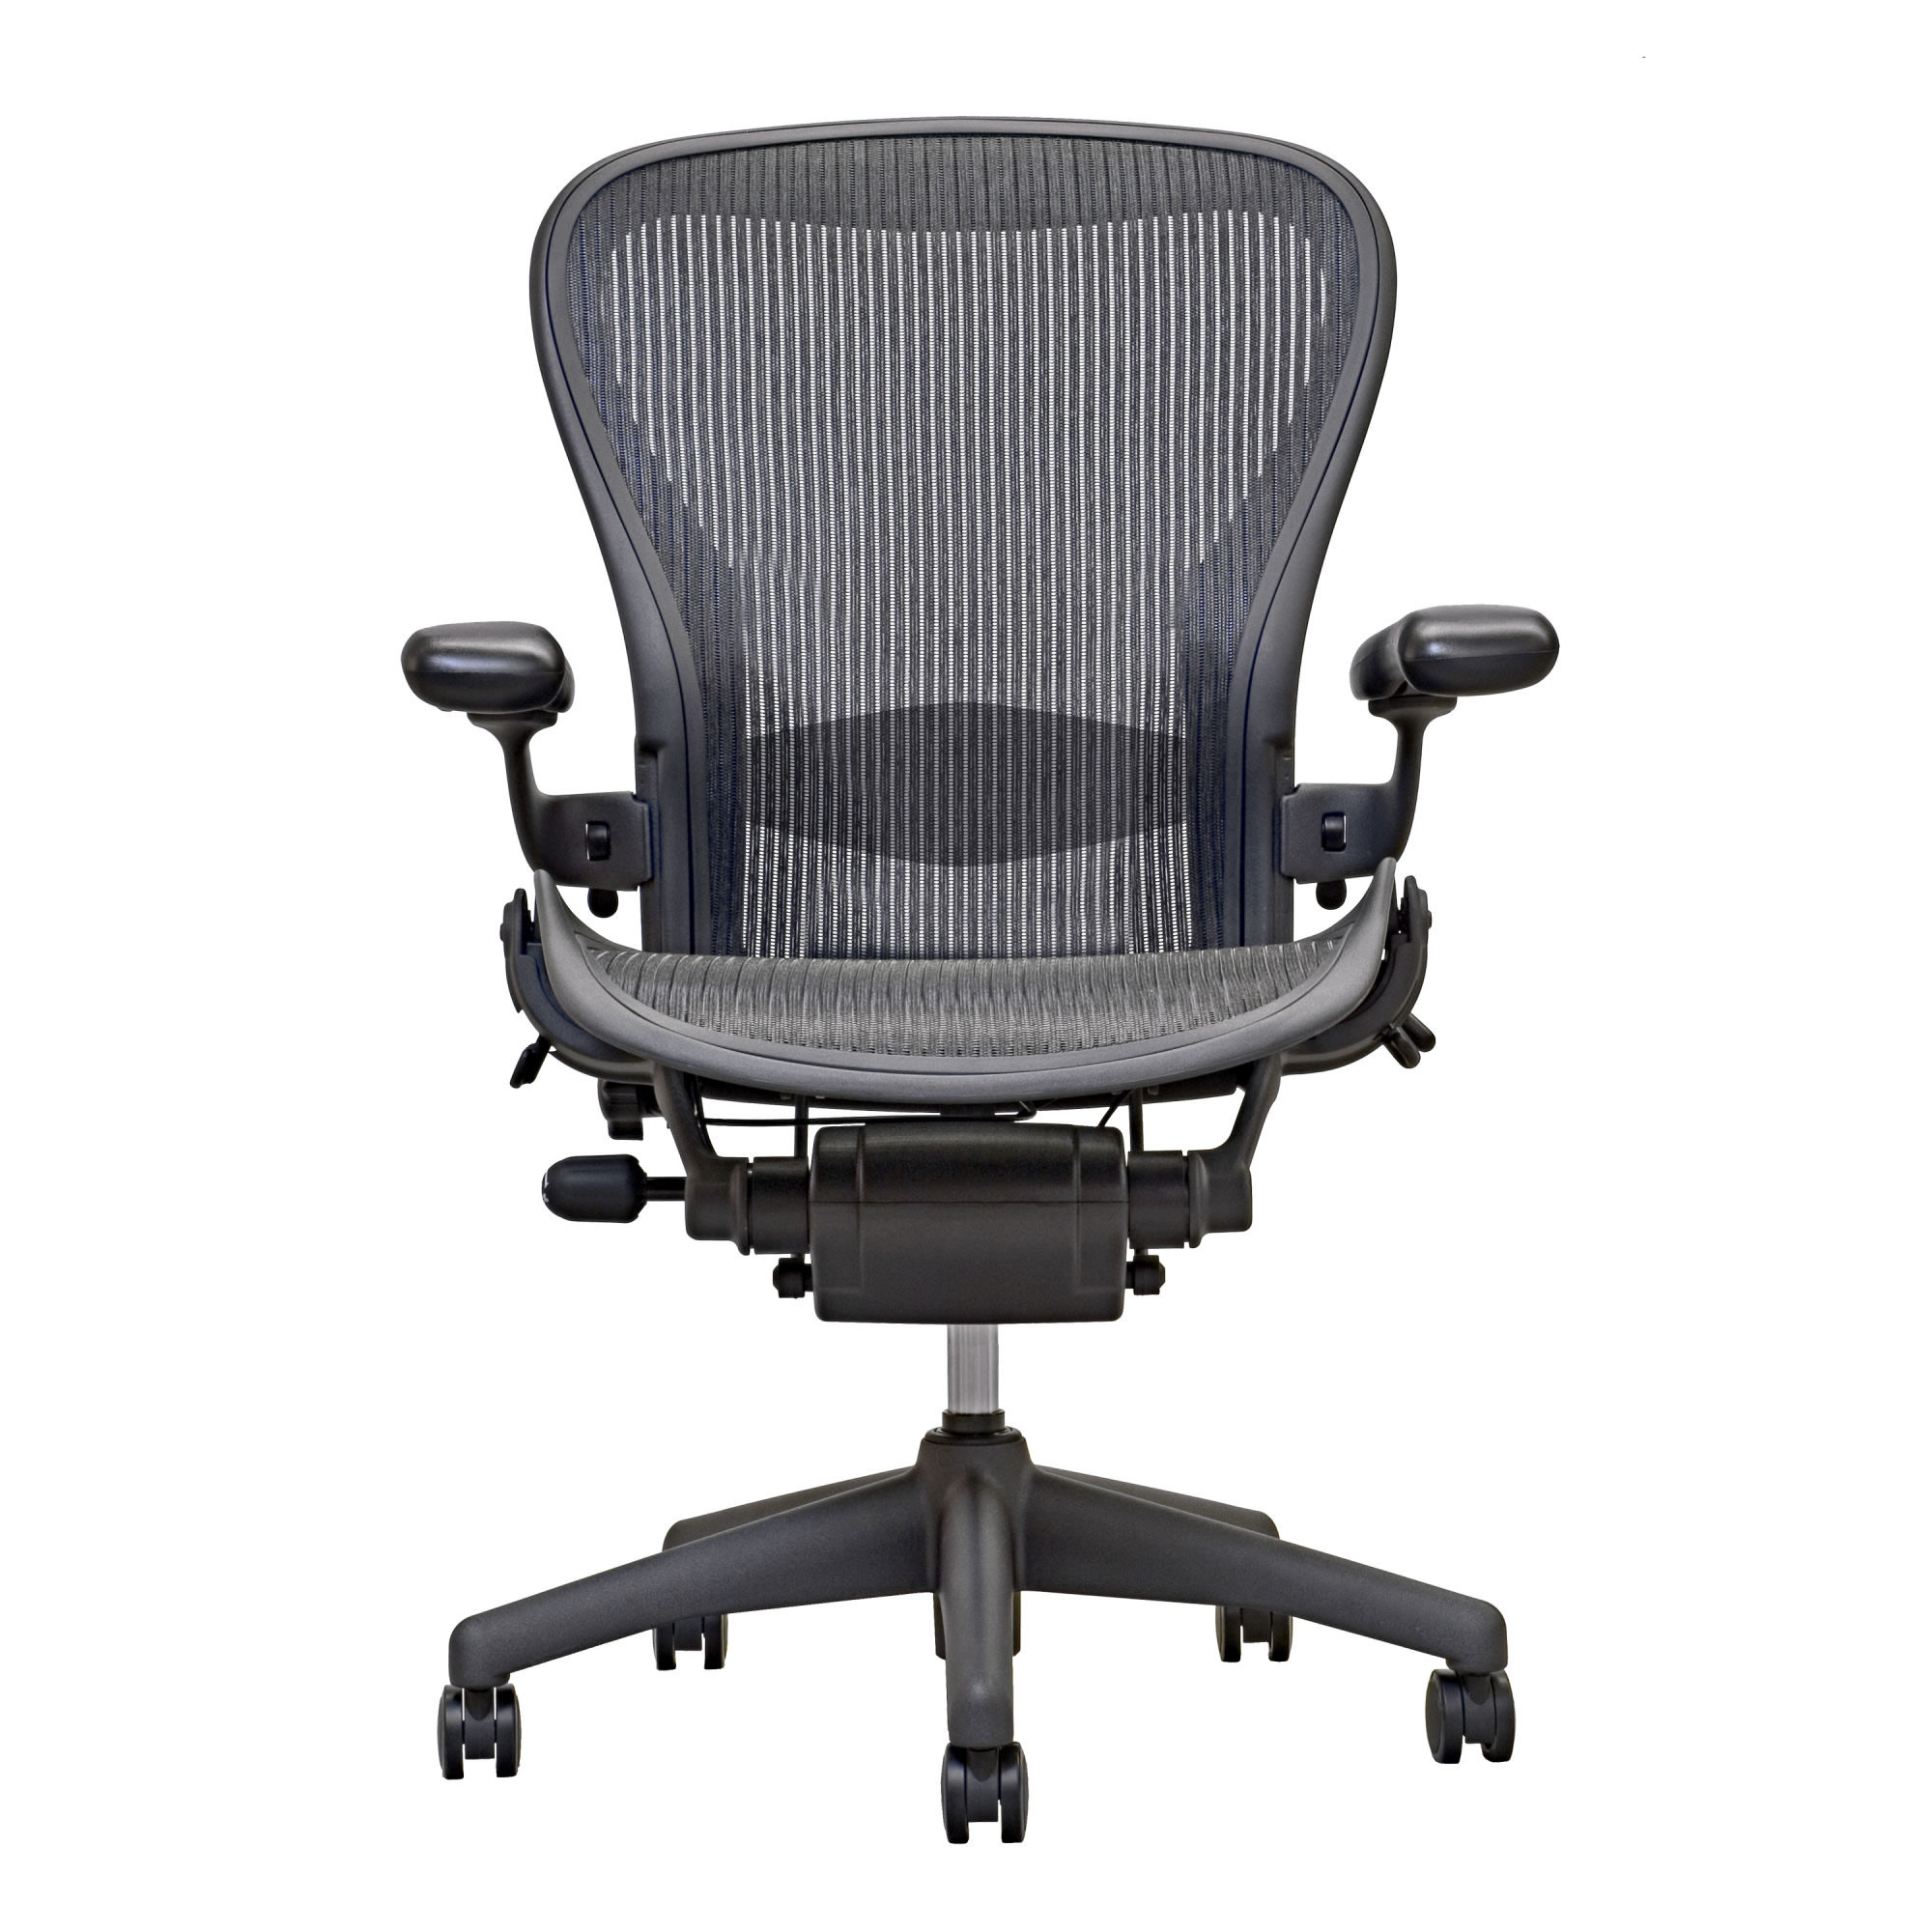 timeless design 8e36d 7e517 Aeron Chair by Herman Miller - Highly Adjustable - Carbon